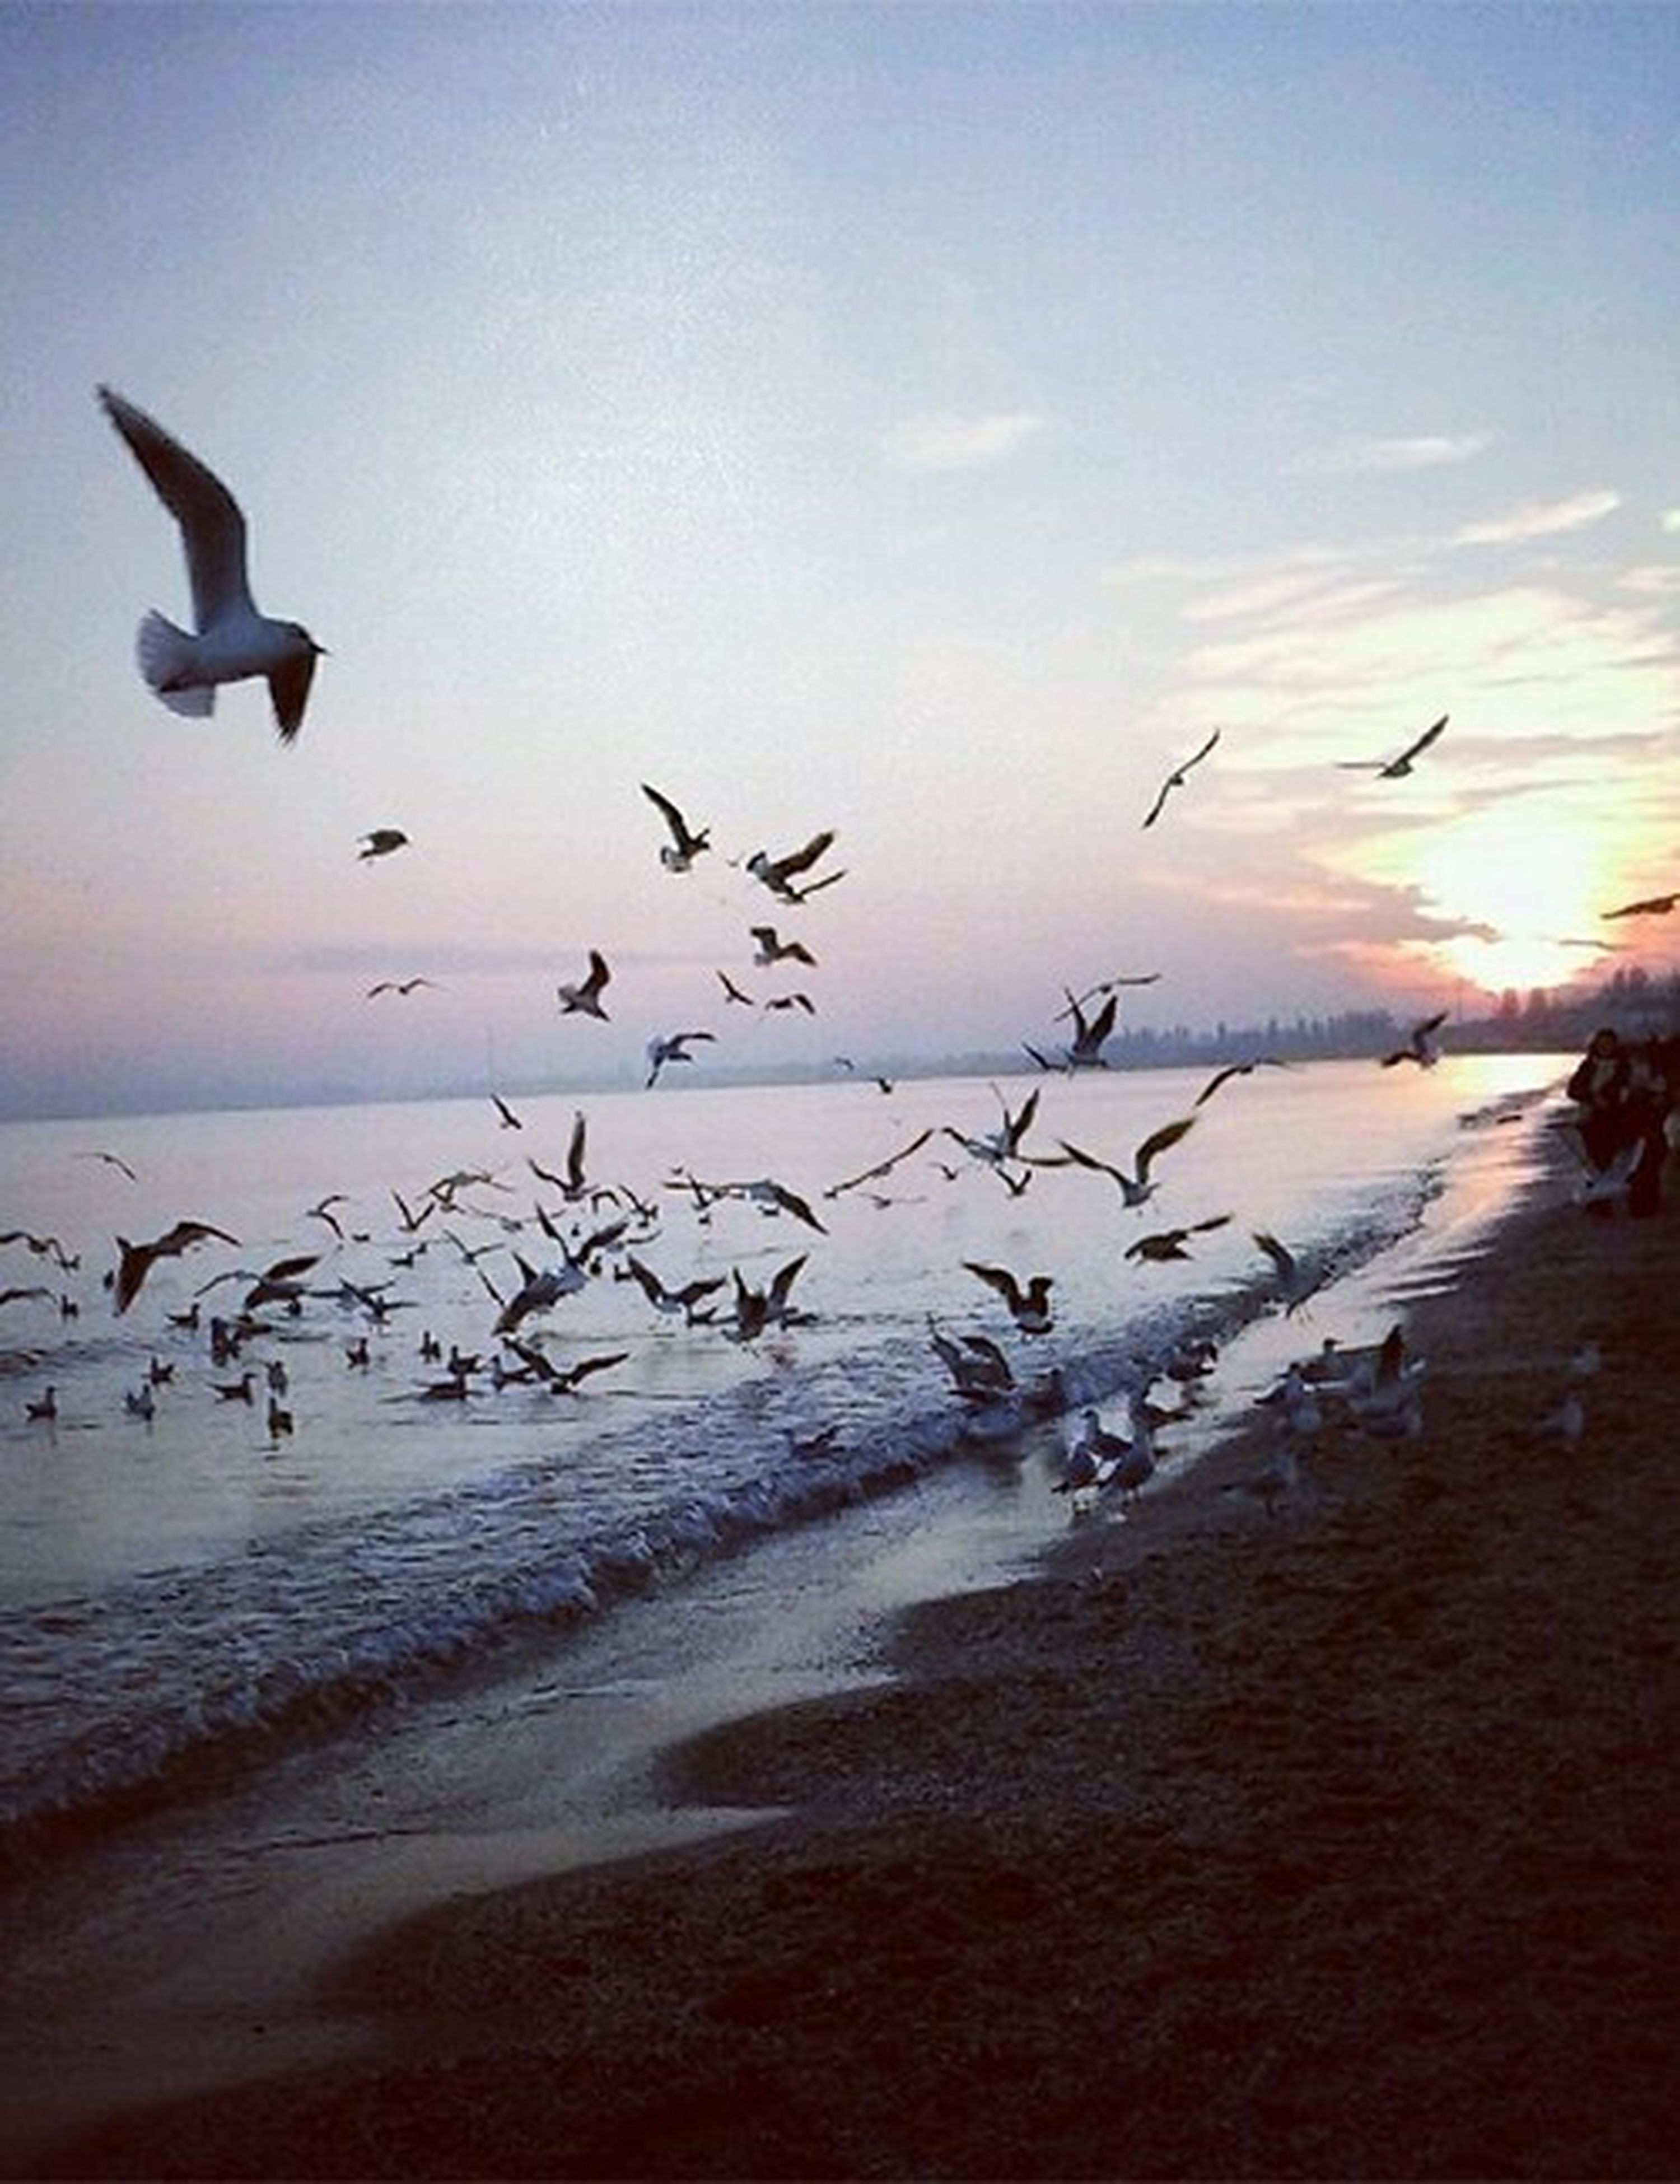 bird, animal themes, animals in the wild, flying, wildlife, water, flock of birds, sea, seagull, sky, spread wings, beach, horizon over water, nature, medium group of animals, mid-air, beauty in nature, shore, scenics